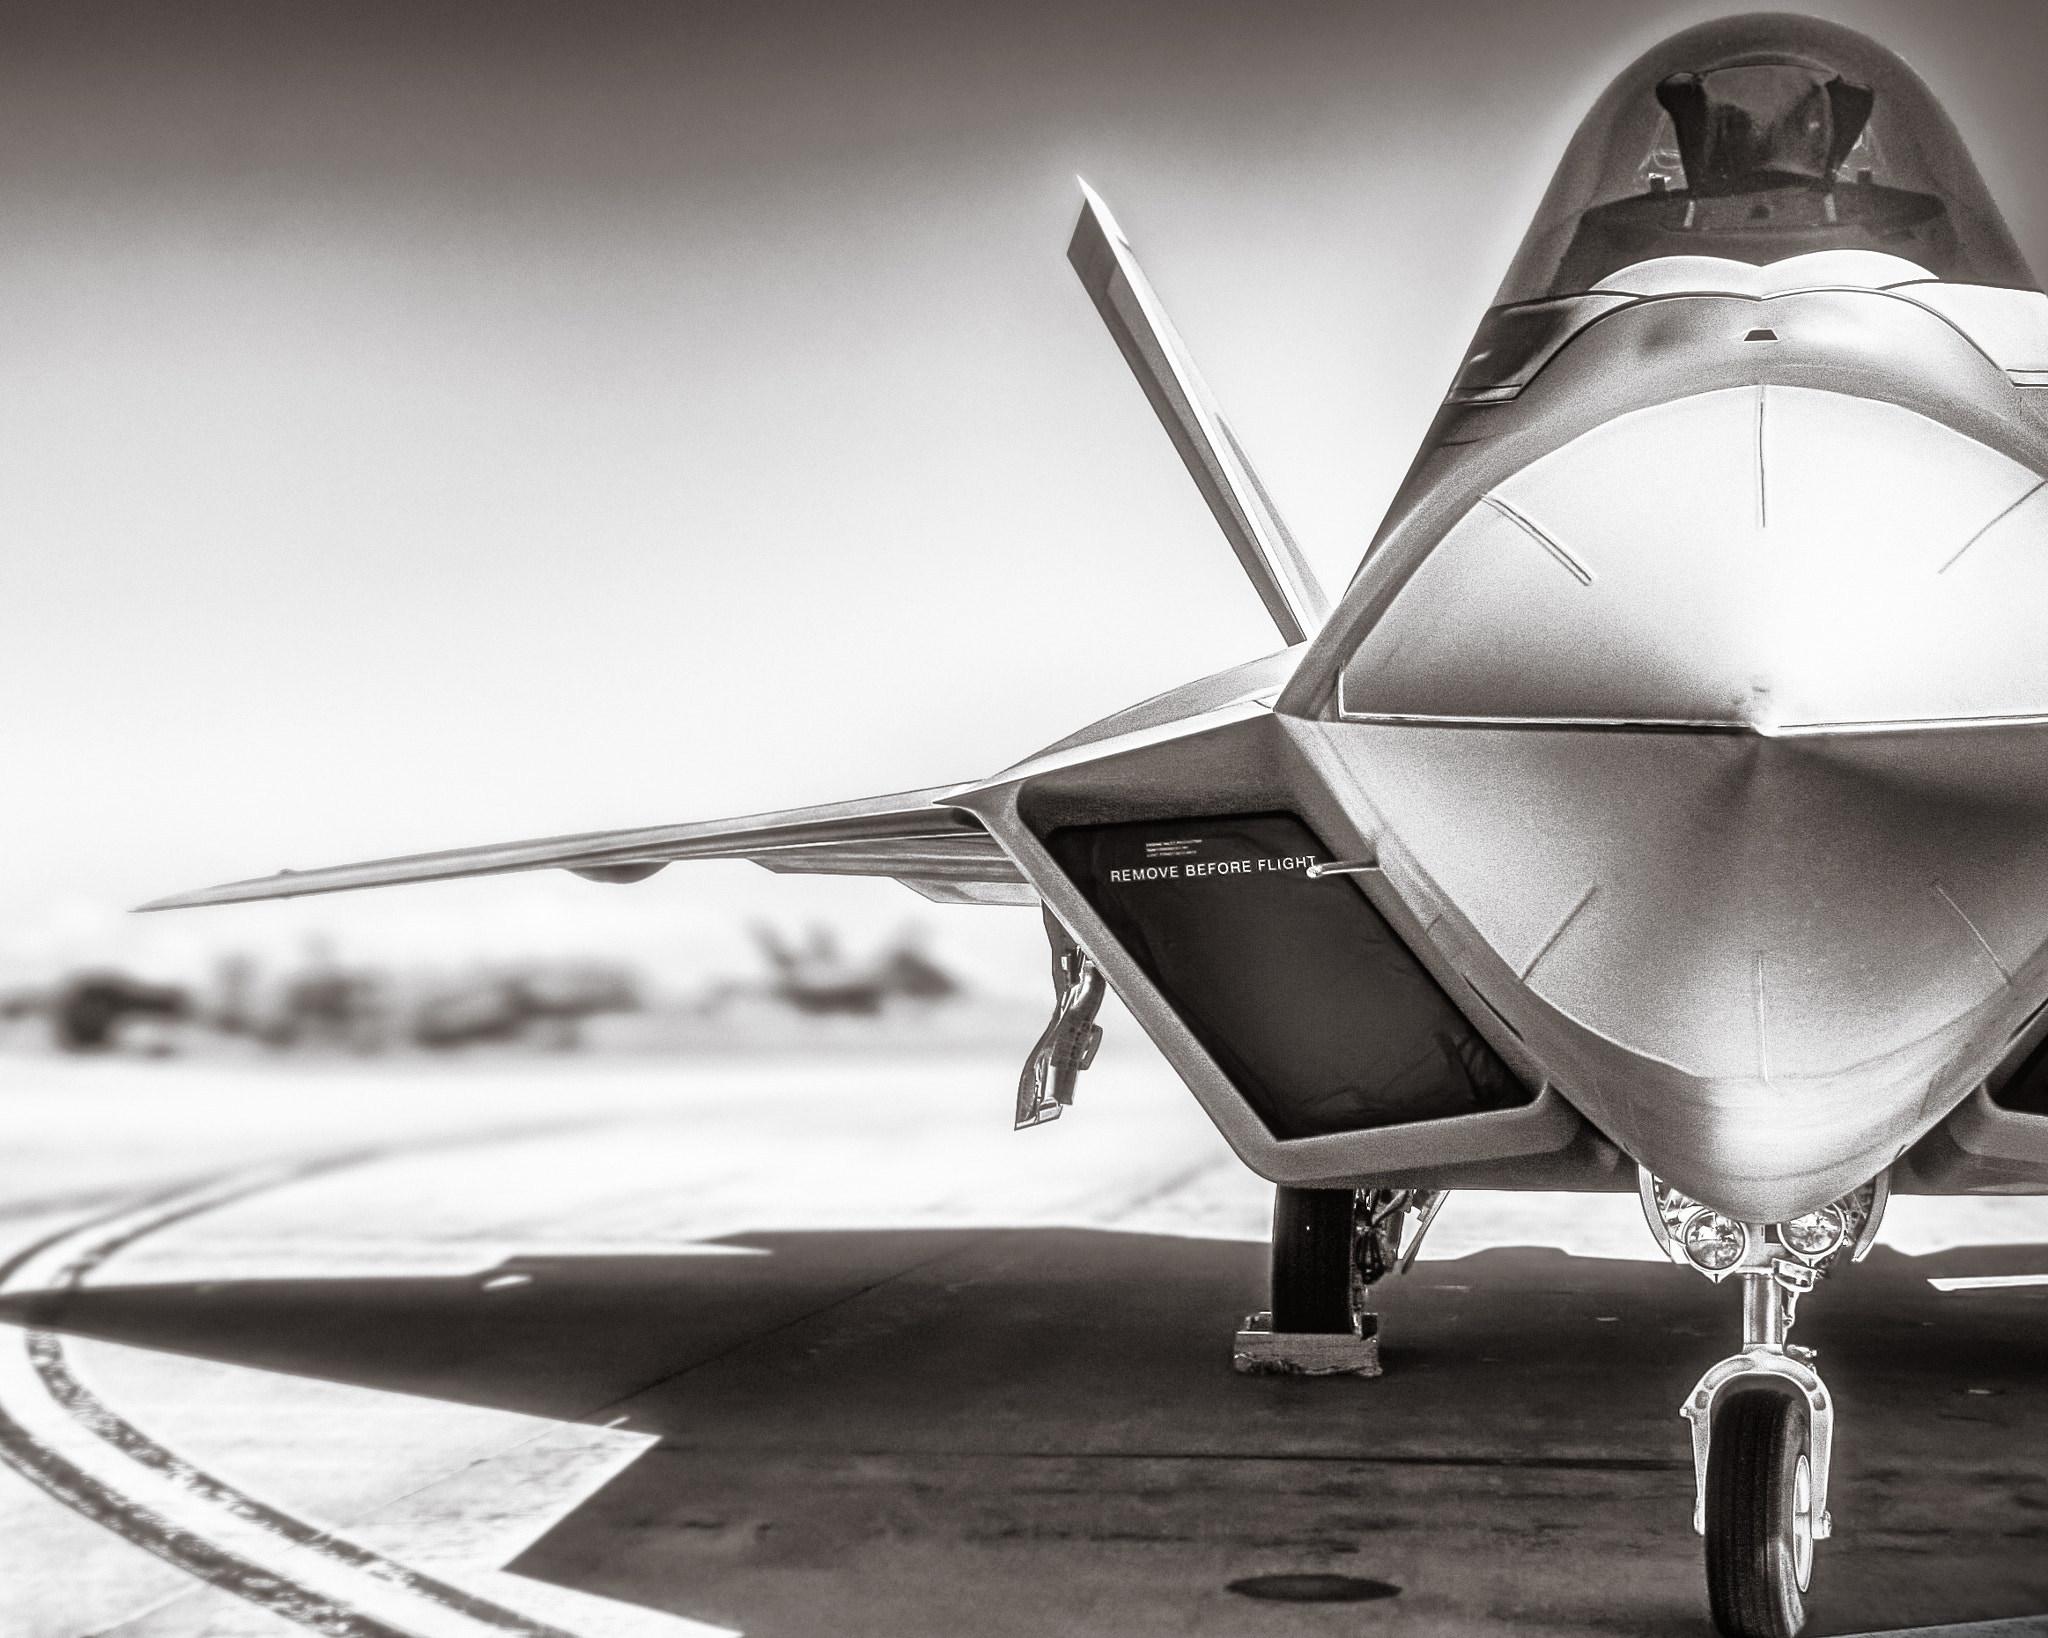 Photograph remove before flight by Scott Stringham on 500px